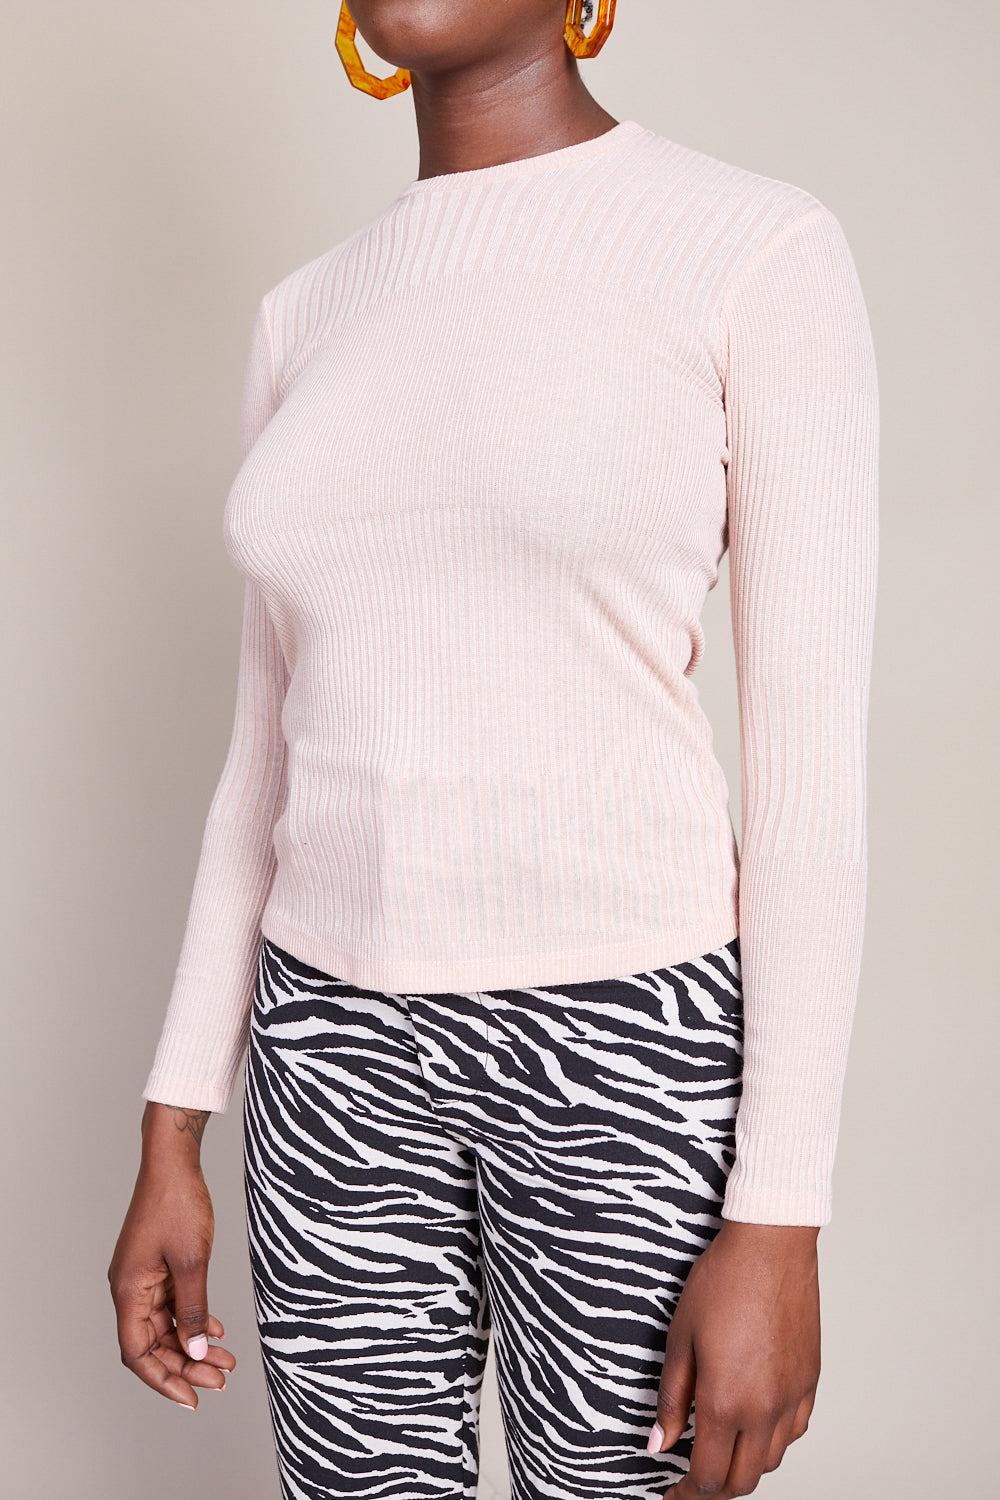 No.6 Stellan Crewneck Knit Top in Blush - Vert & Vogue